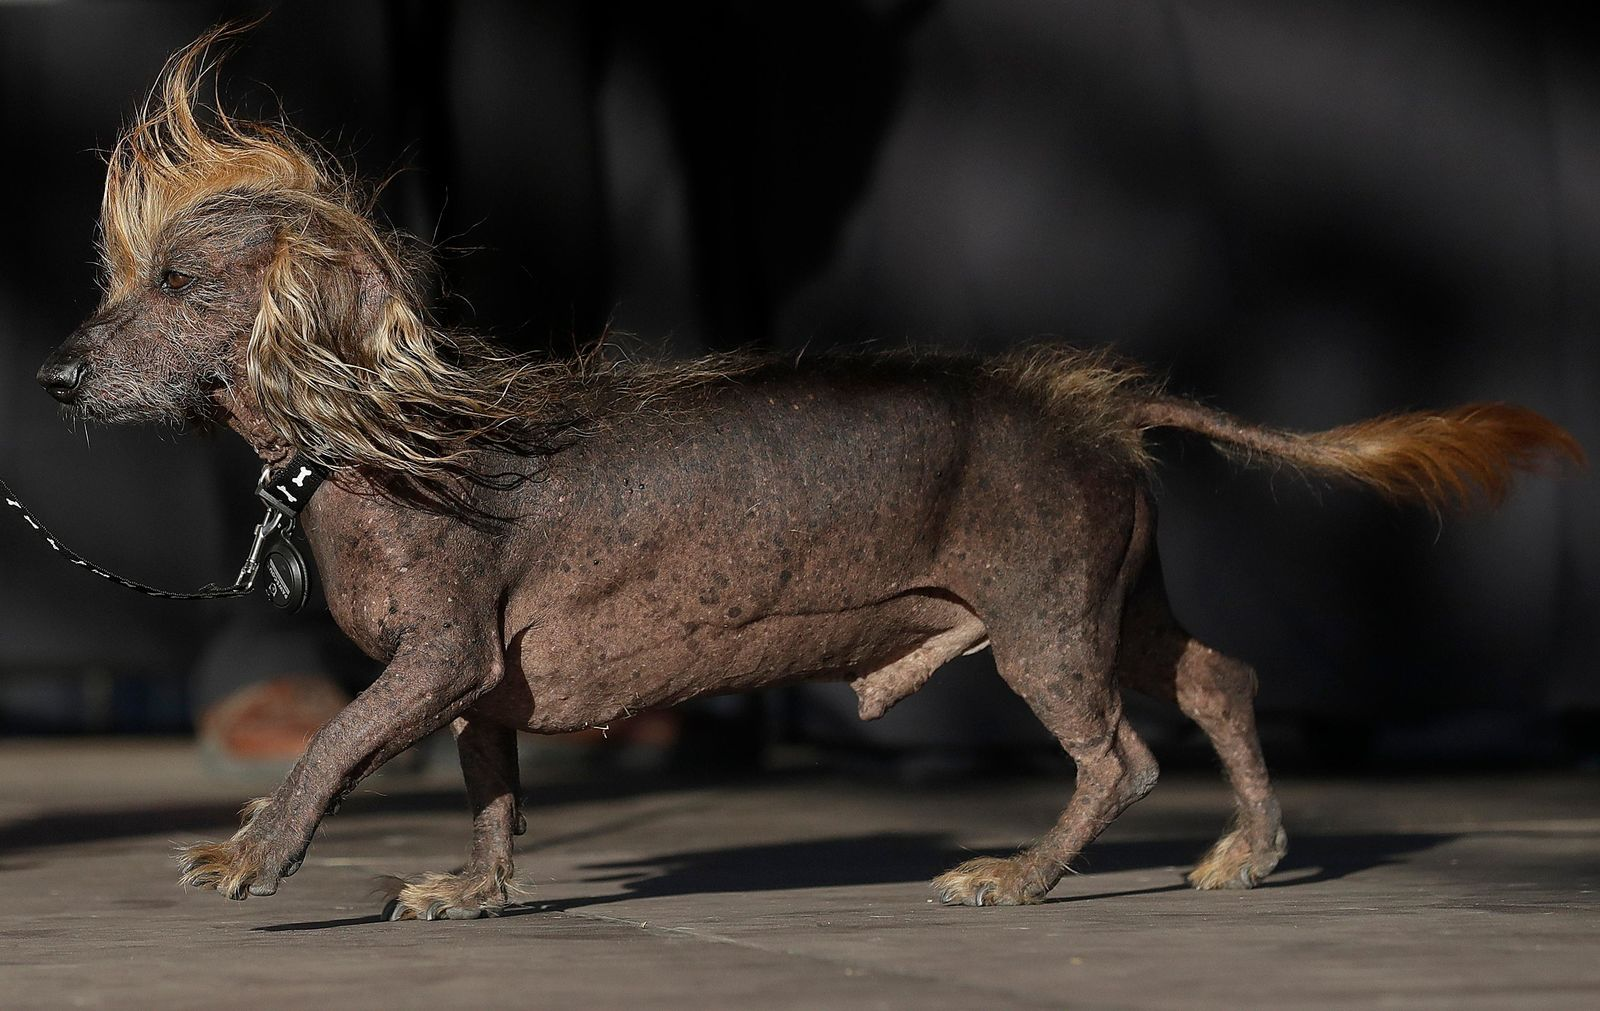 Himisaboo, Chinese Crested and Dachshund mix, walks onstage during the World's Ugliest Dog Contest at the Sonoma-Marin Fair in Petaluma, Calif., Saturday, June 23, 2018. (AP Photo/Jeff Chiu)